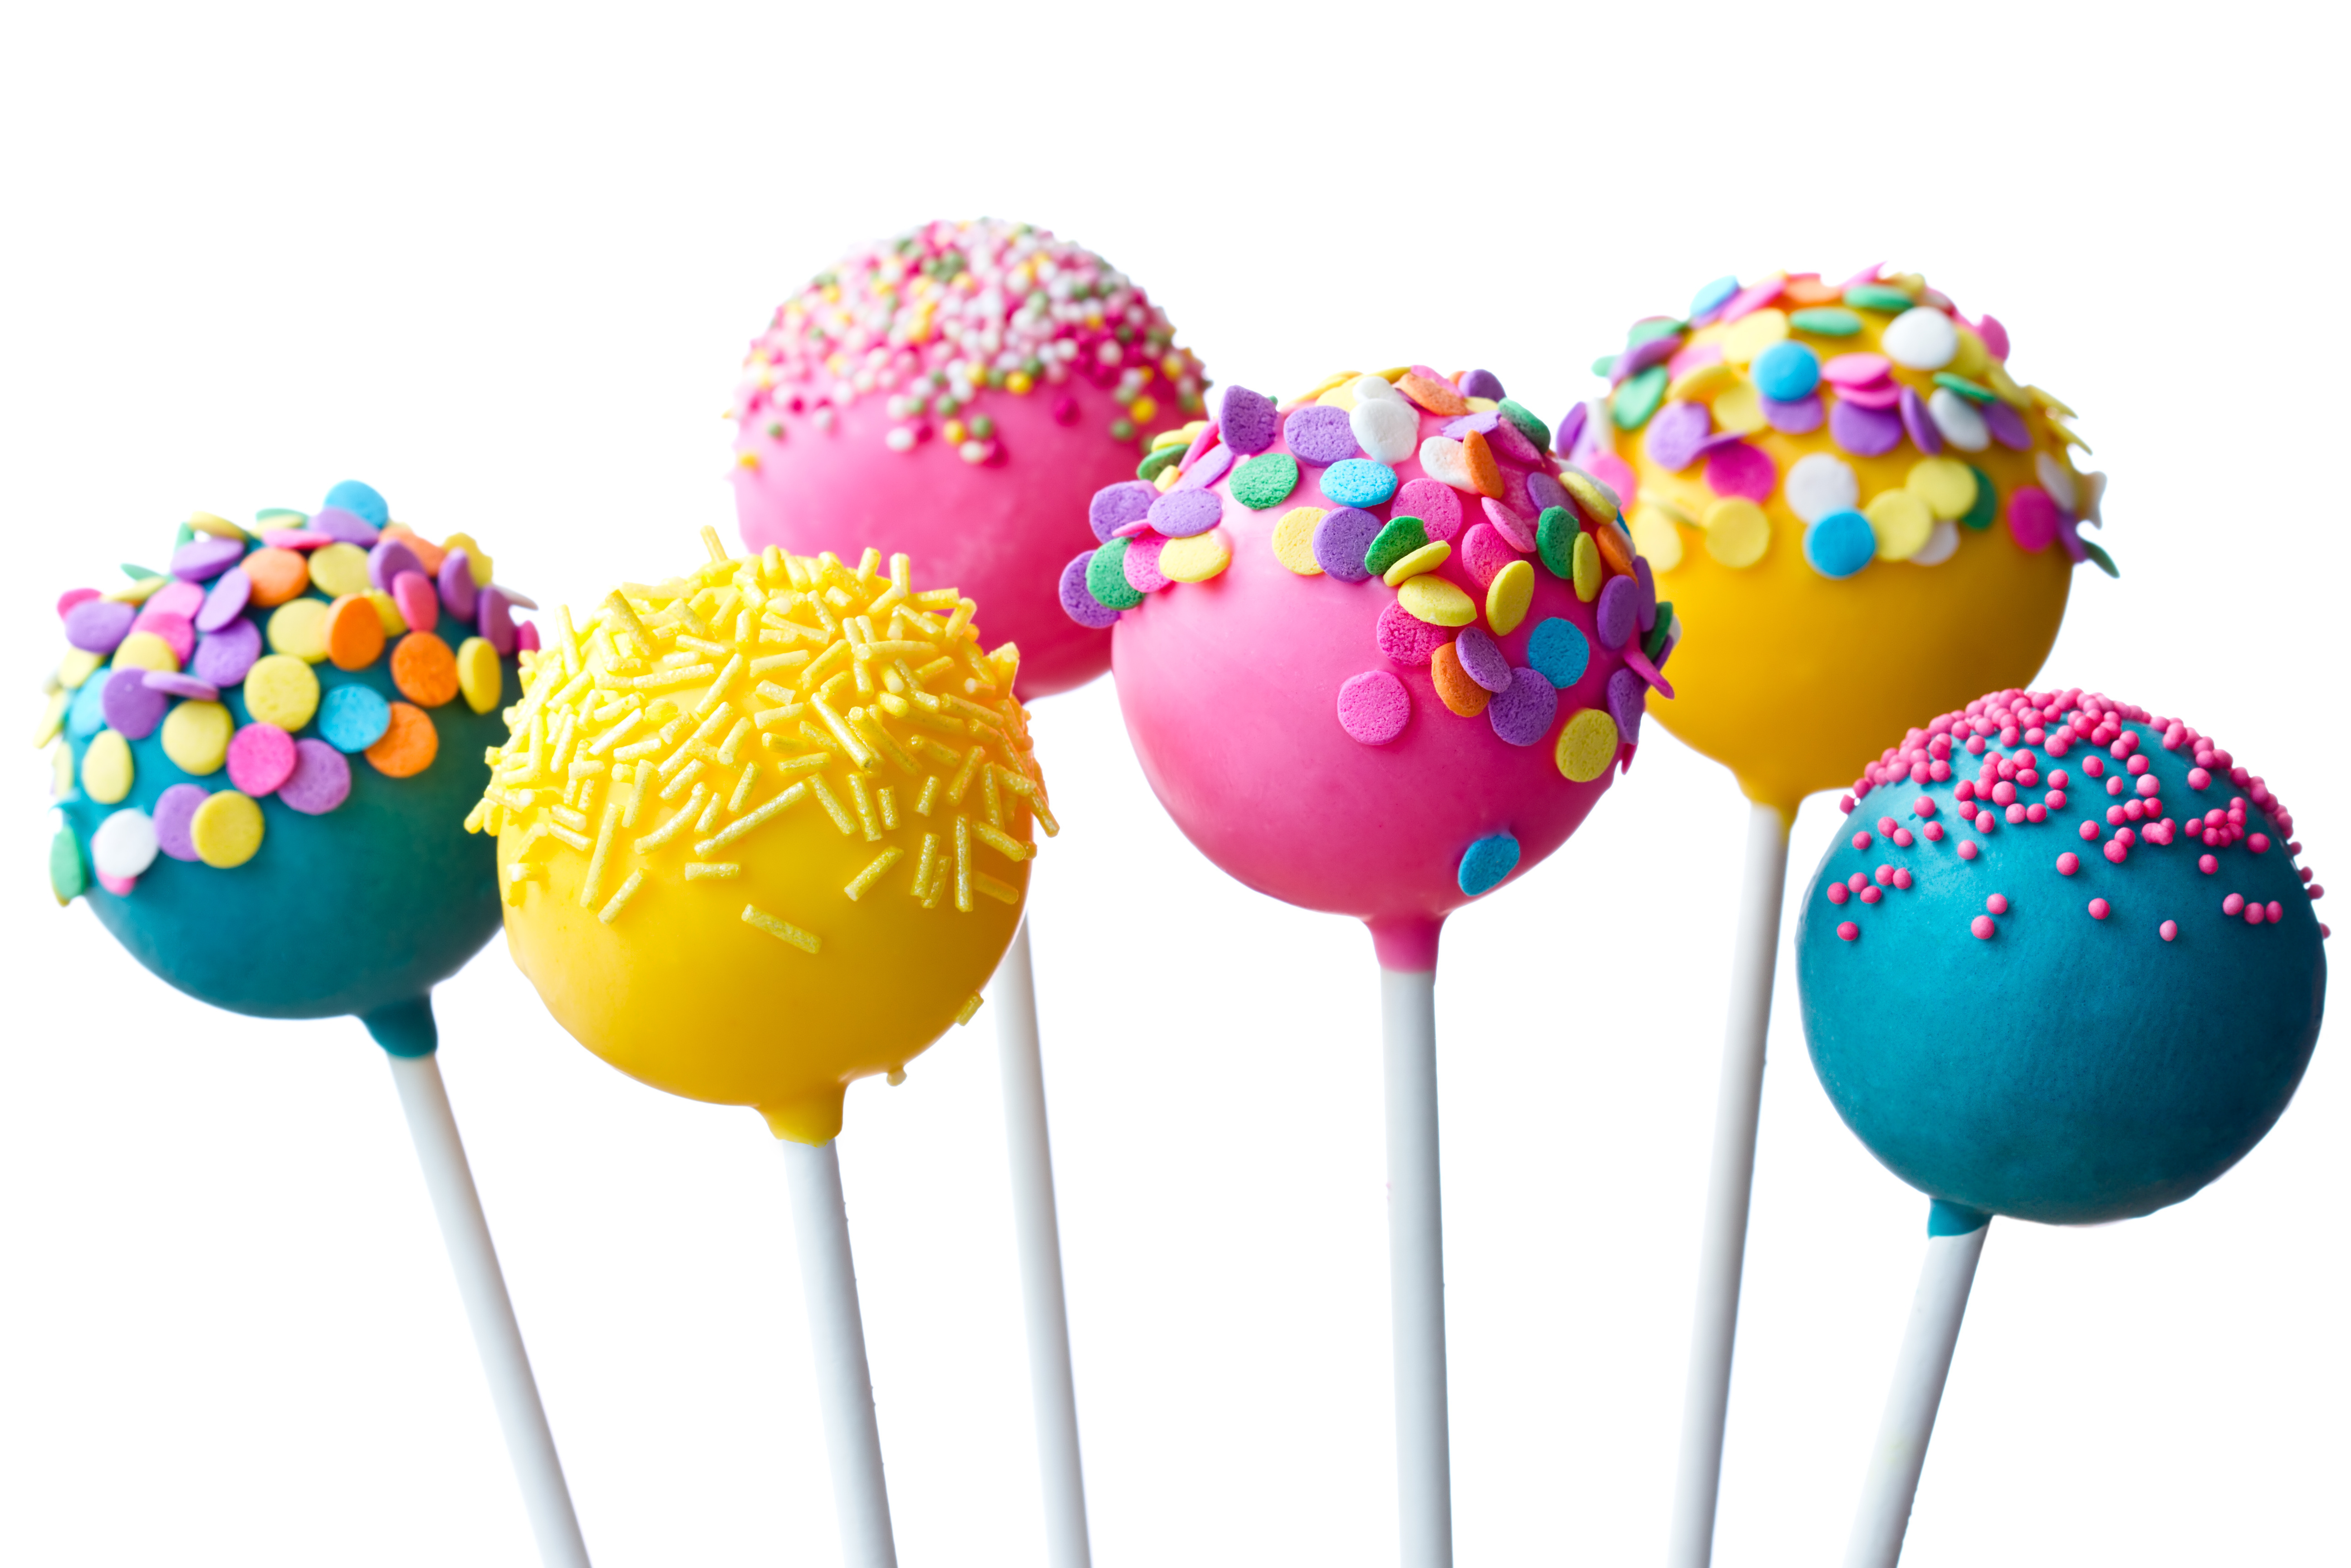 239 Candy HD Wallpapers Background Images 5182x3456